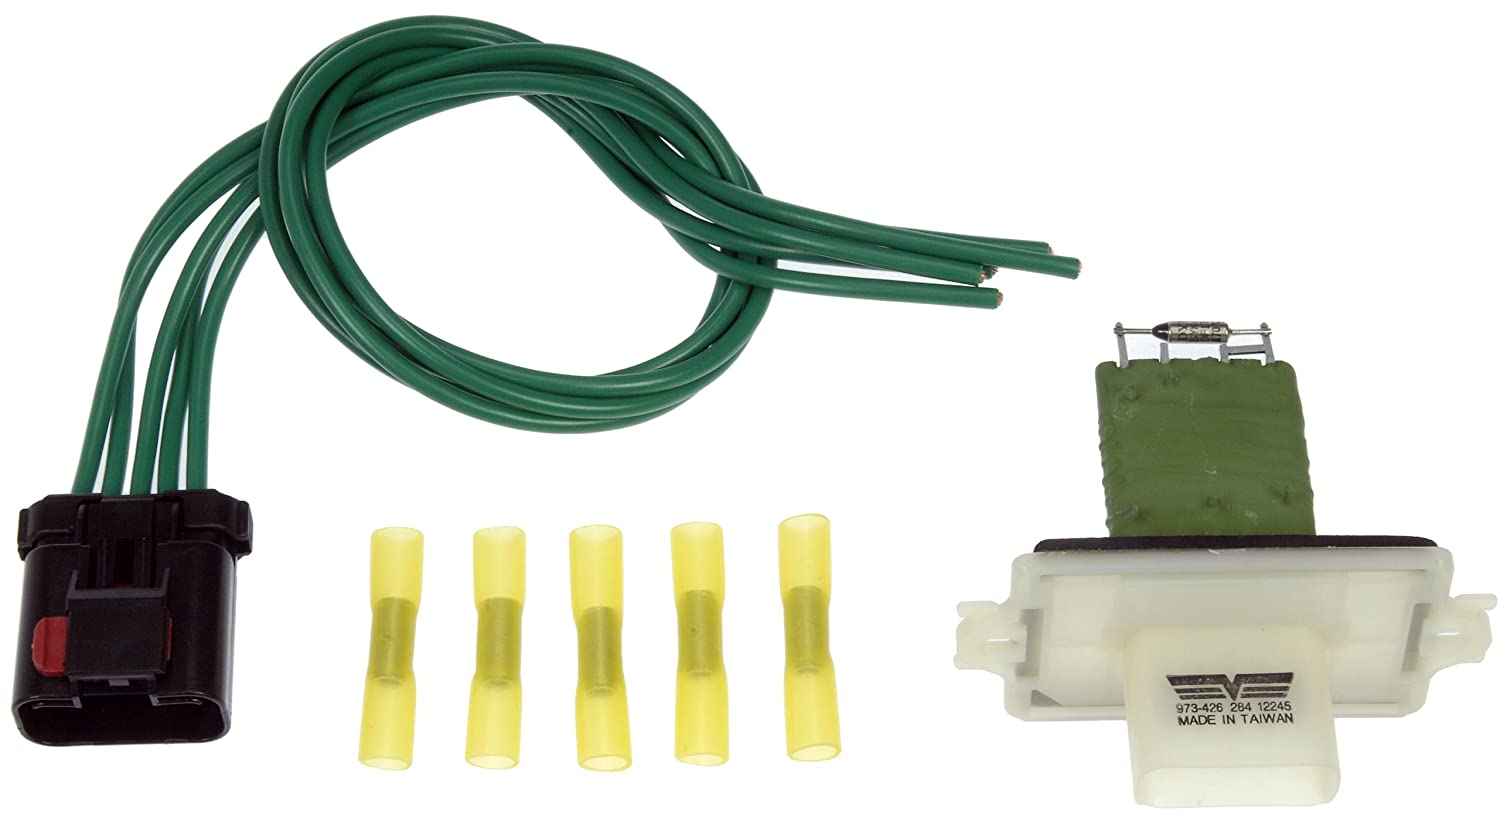 71d6VCcmzNL._SL1500_ amazon com dorman 973 426 blower motor resistor kit automotive 2004 dodge dakota blower motor resistor wiring harness at soozxer.org